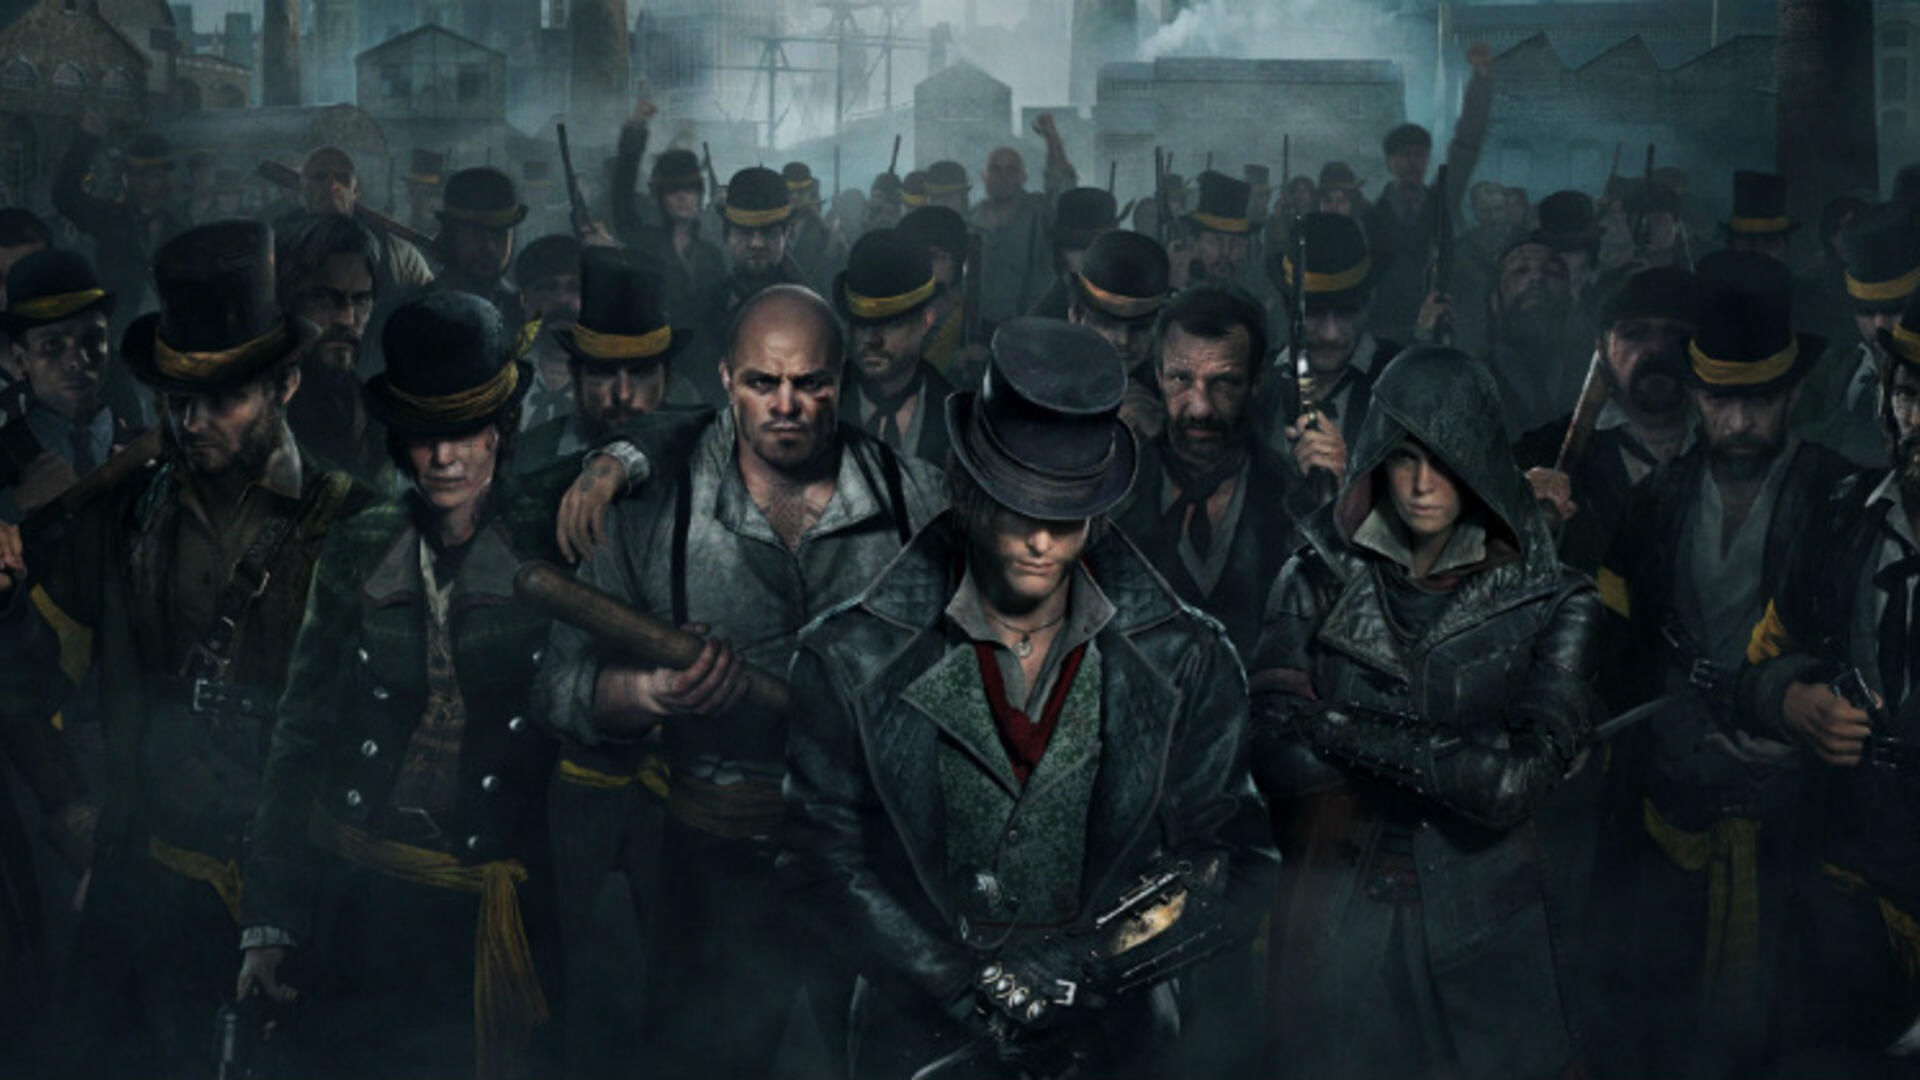 Assassin's Creed Syndicate PS4 Review: Getting the Gang Back Together